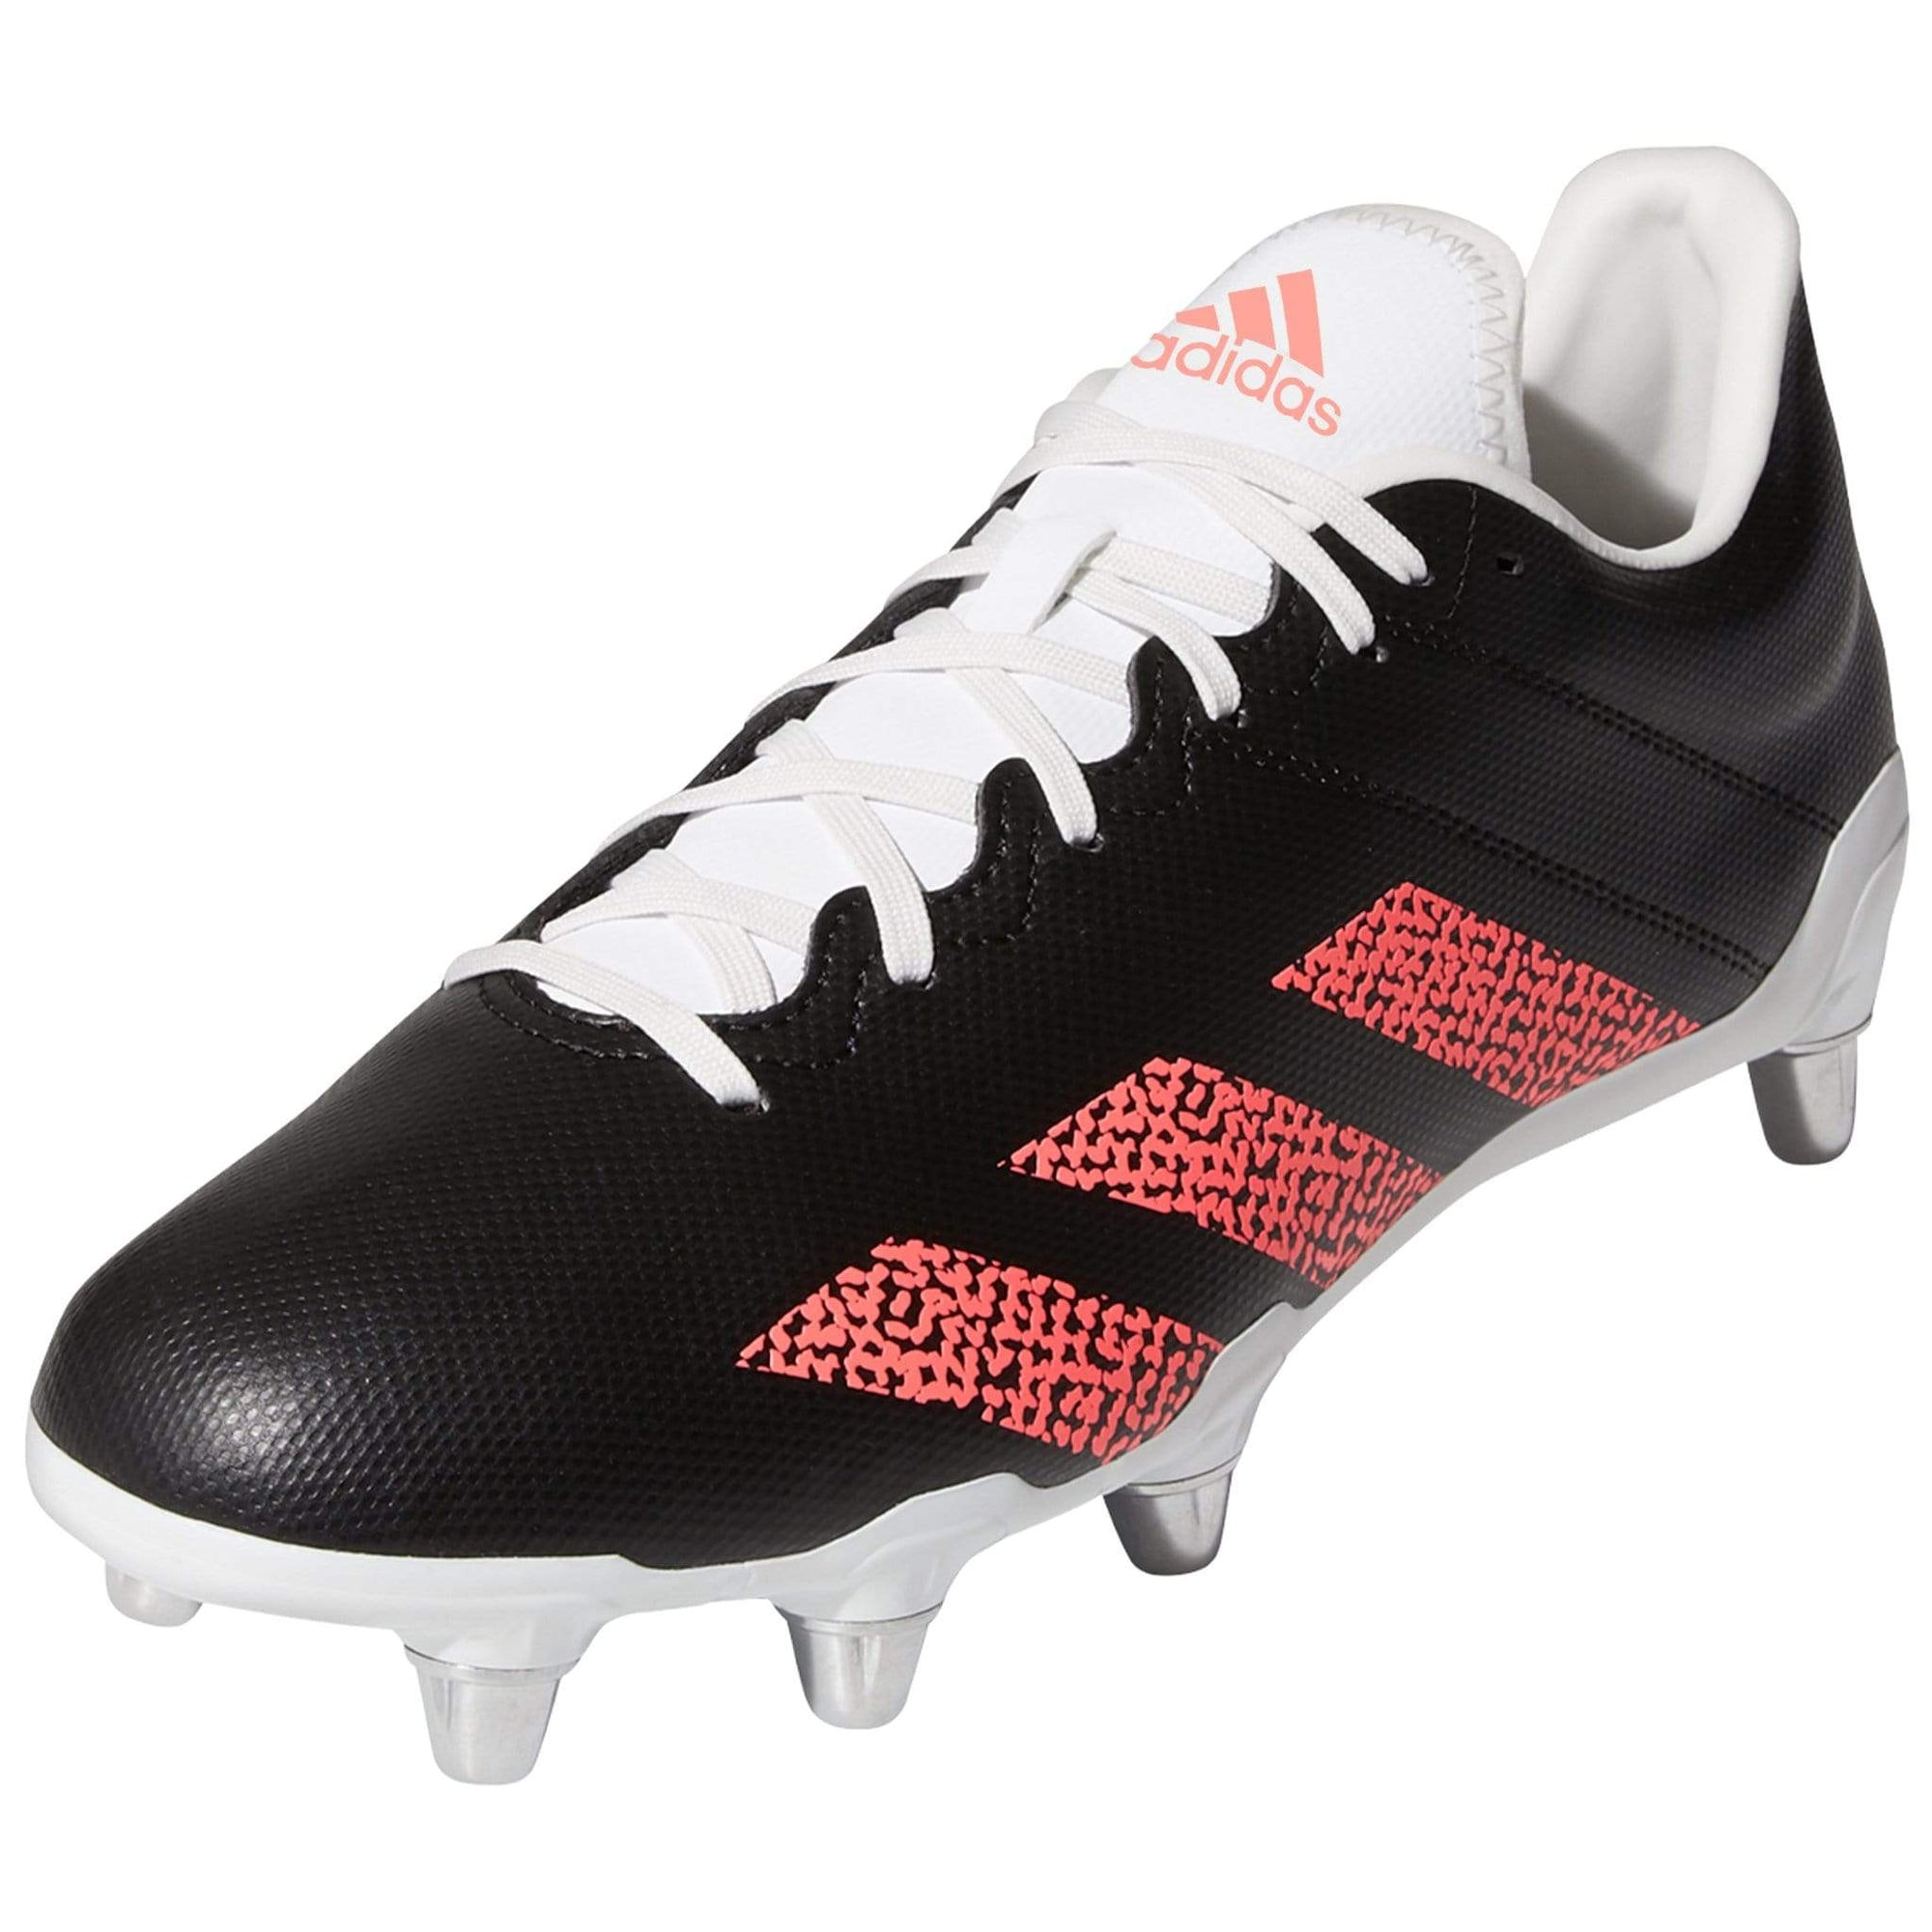 Front View Black Adidas Rugby Boots With Signal Pink Stripes